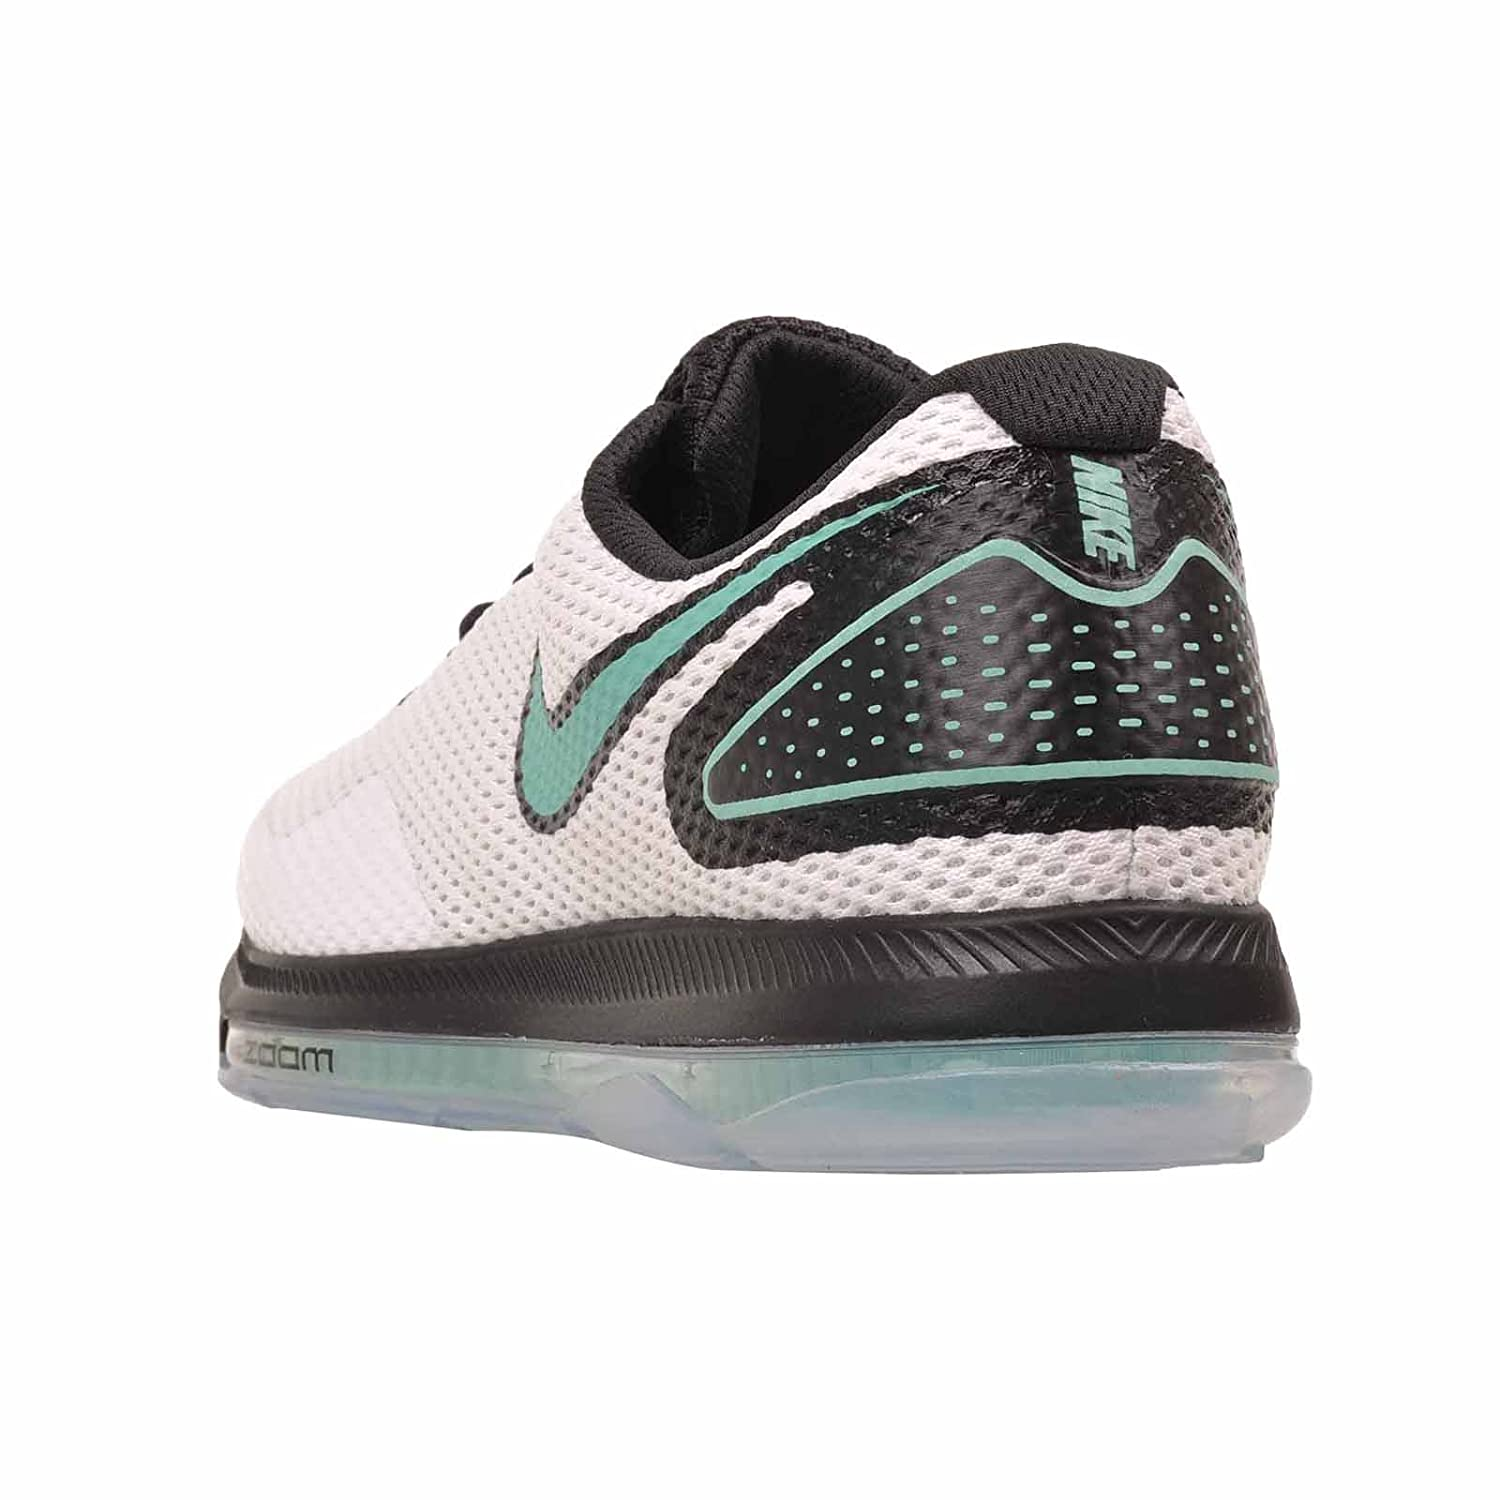 95d5e4226187 ... NIKE Zoom All Out Out Out Low Men s Running Sneaker B07CZLHLLN 10.5  D(M) ...